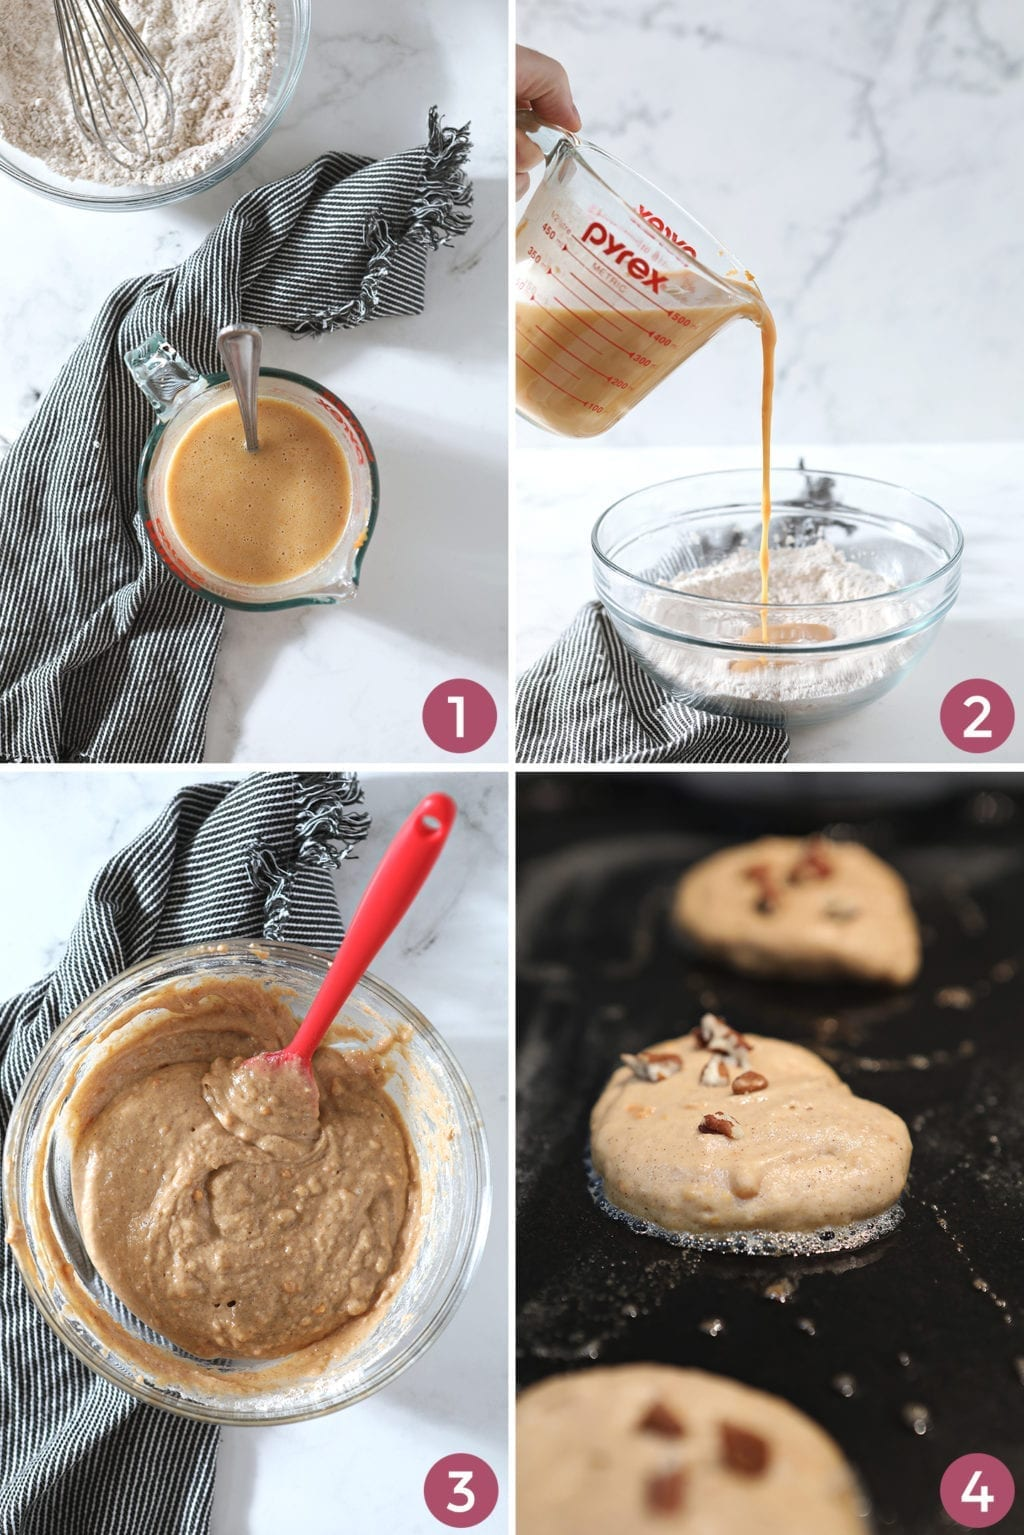 A collage of four photos shows how to combine the ingredients to make the pancake batter, as well as how to cook it on a griddle